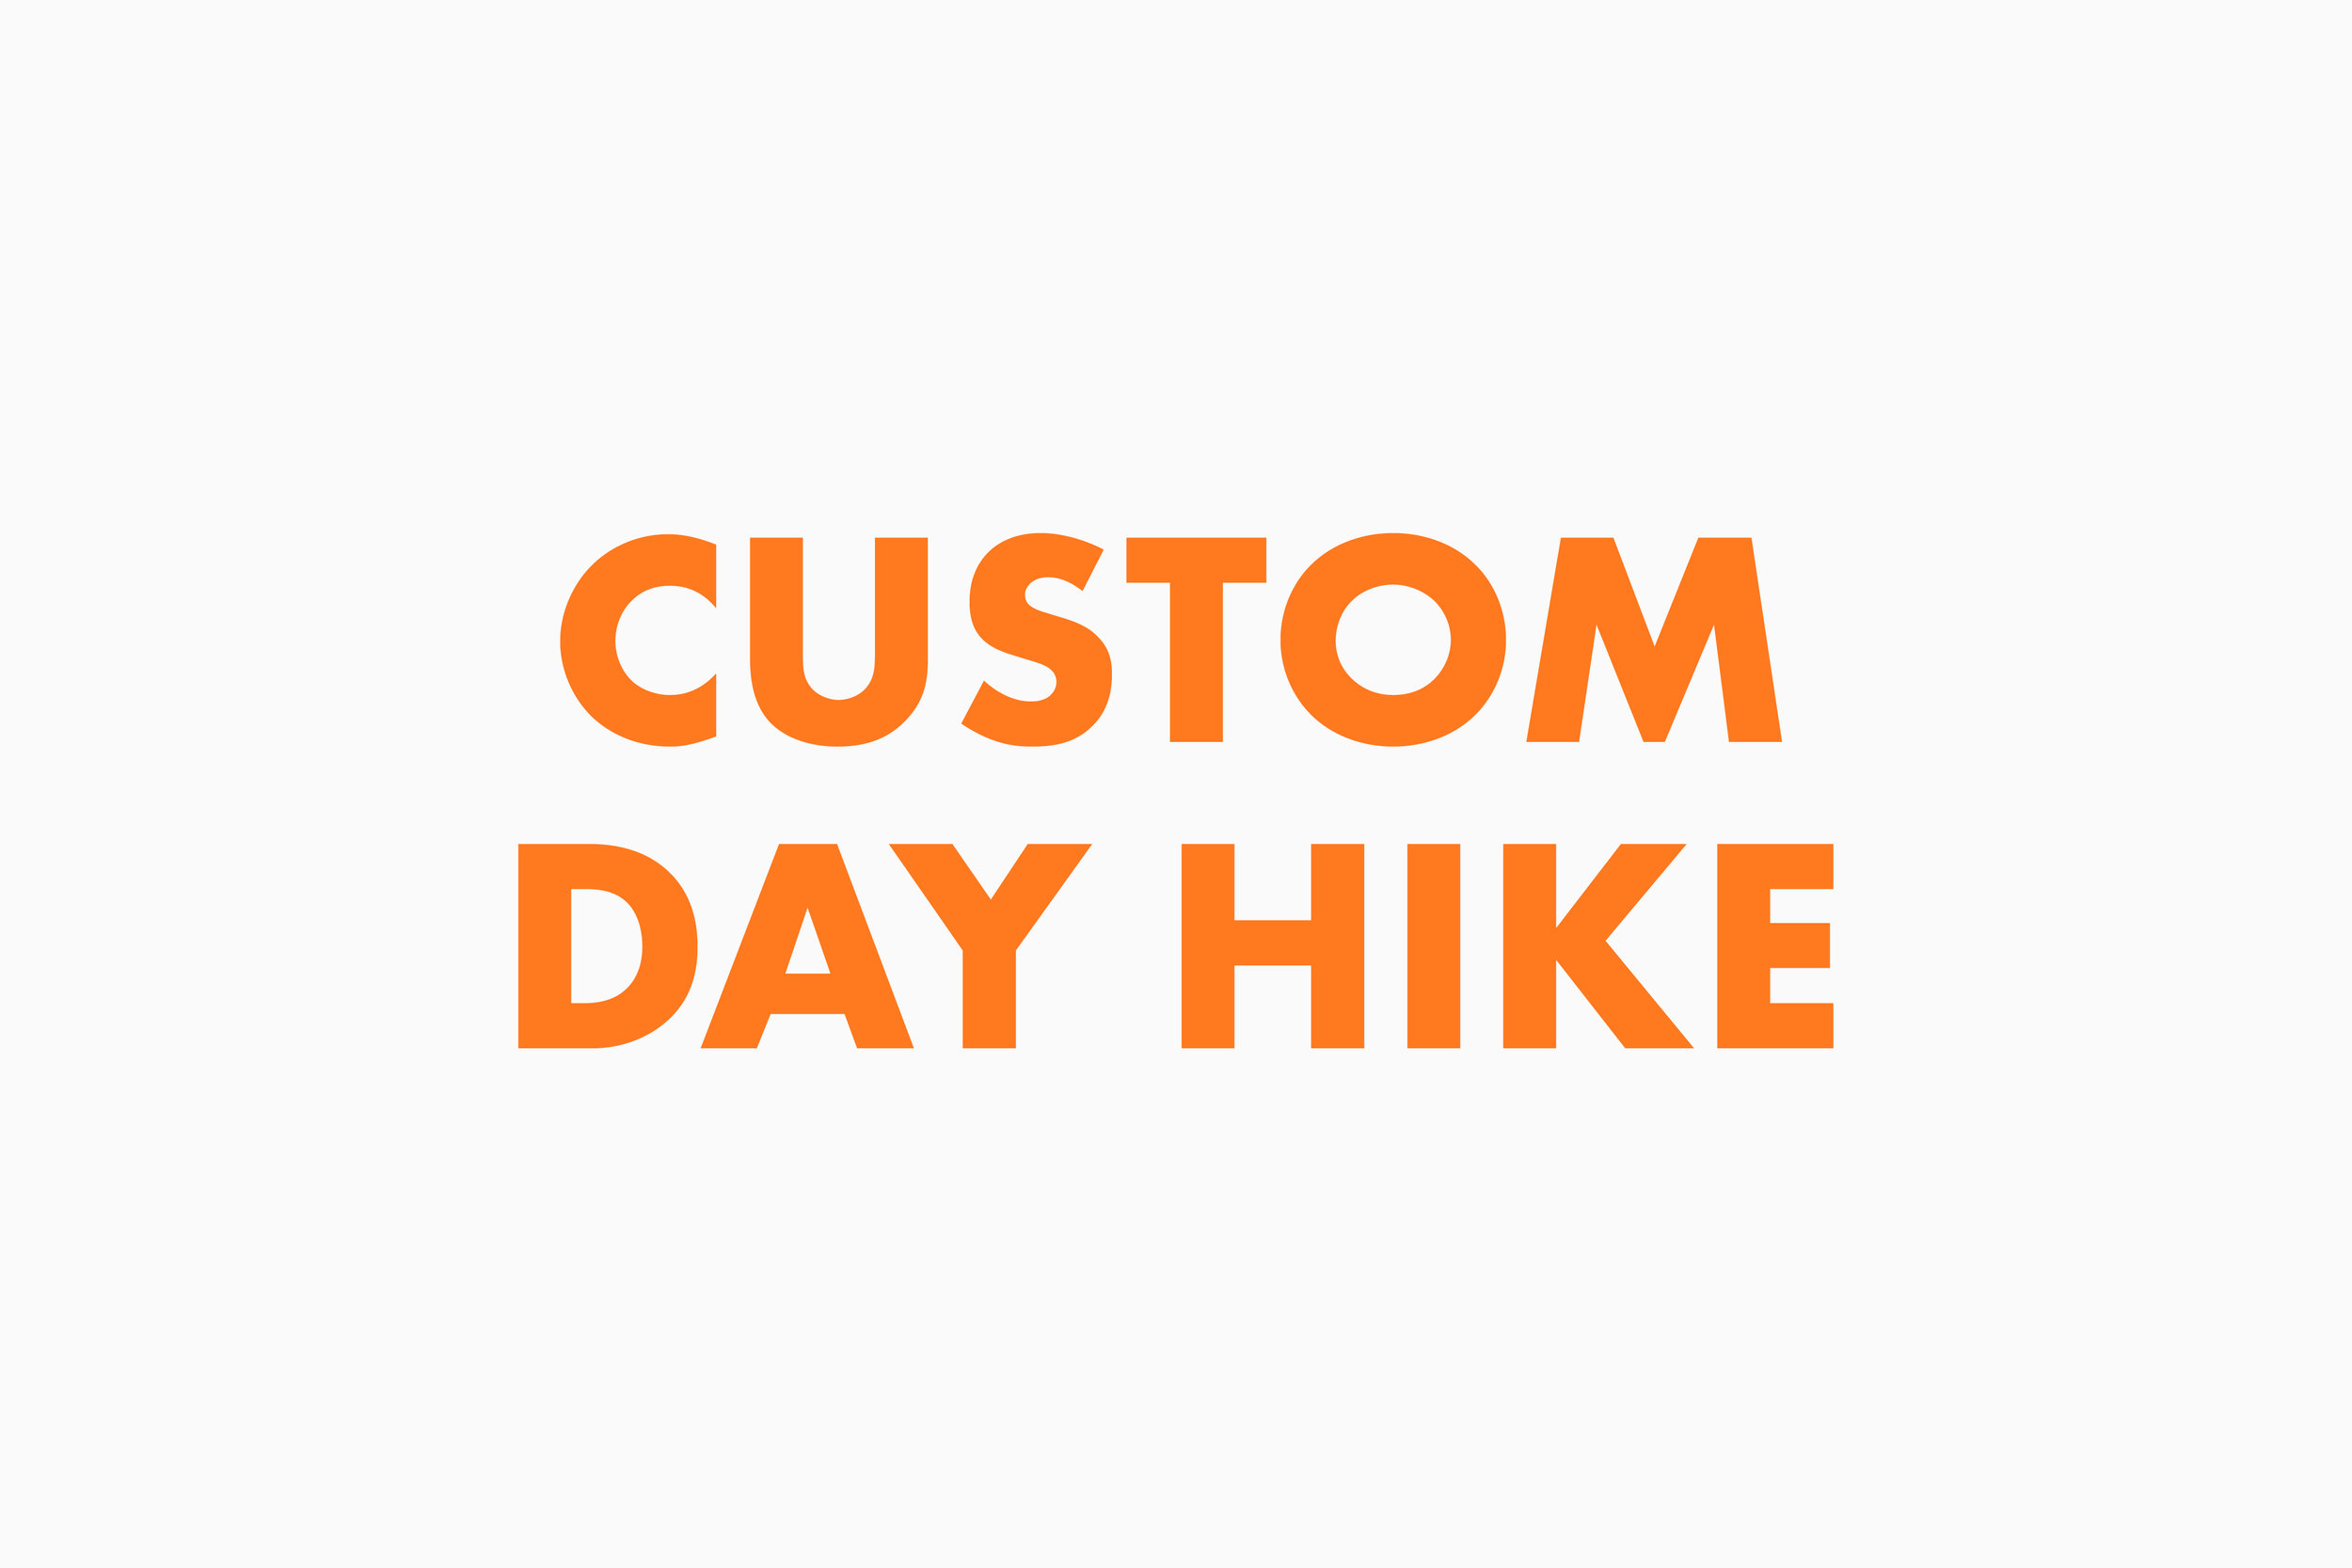 custom_day_hike.jpg